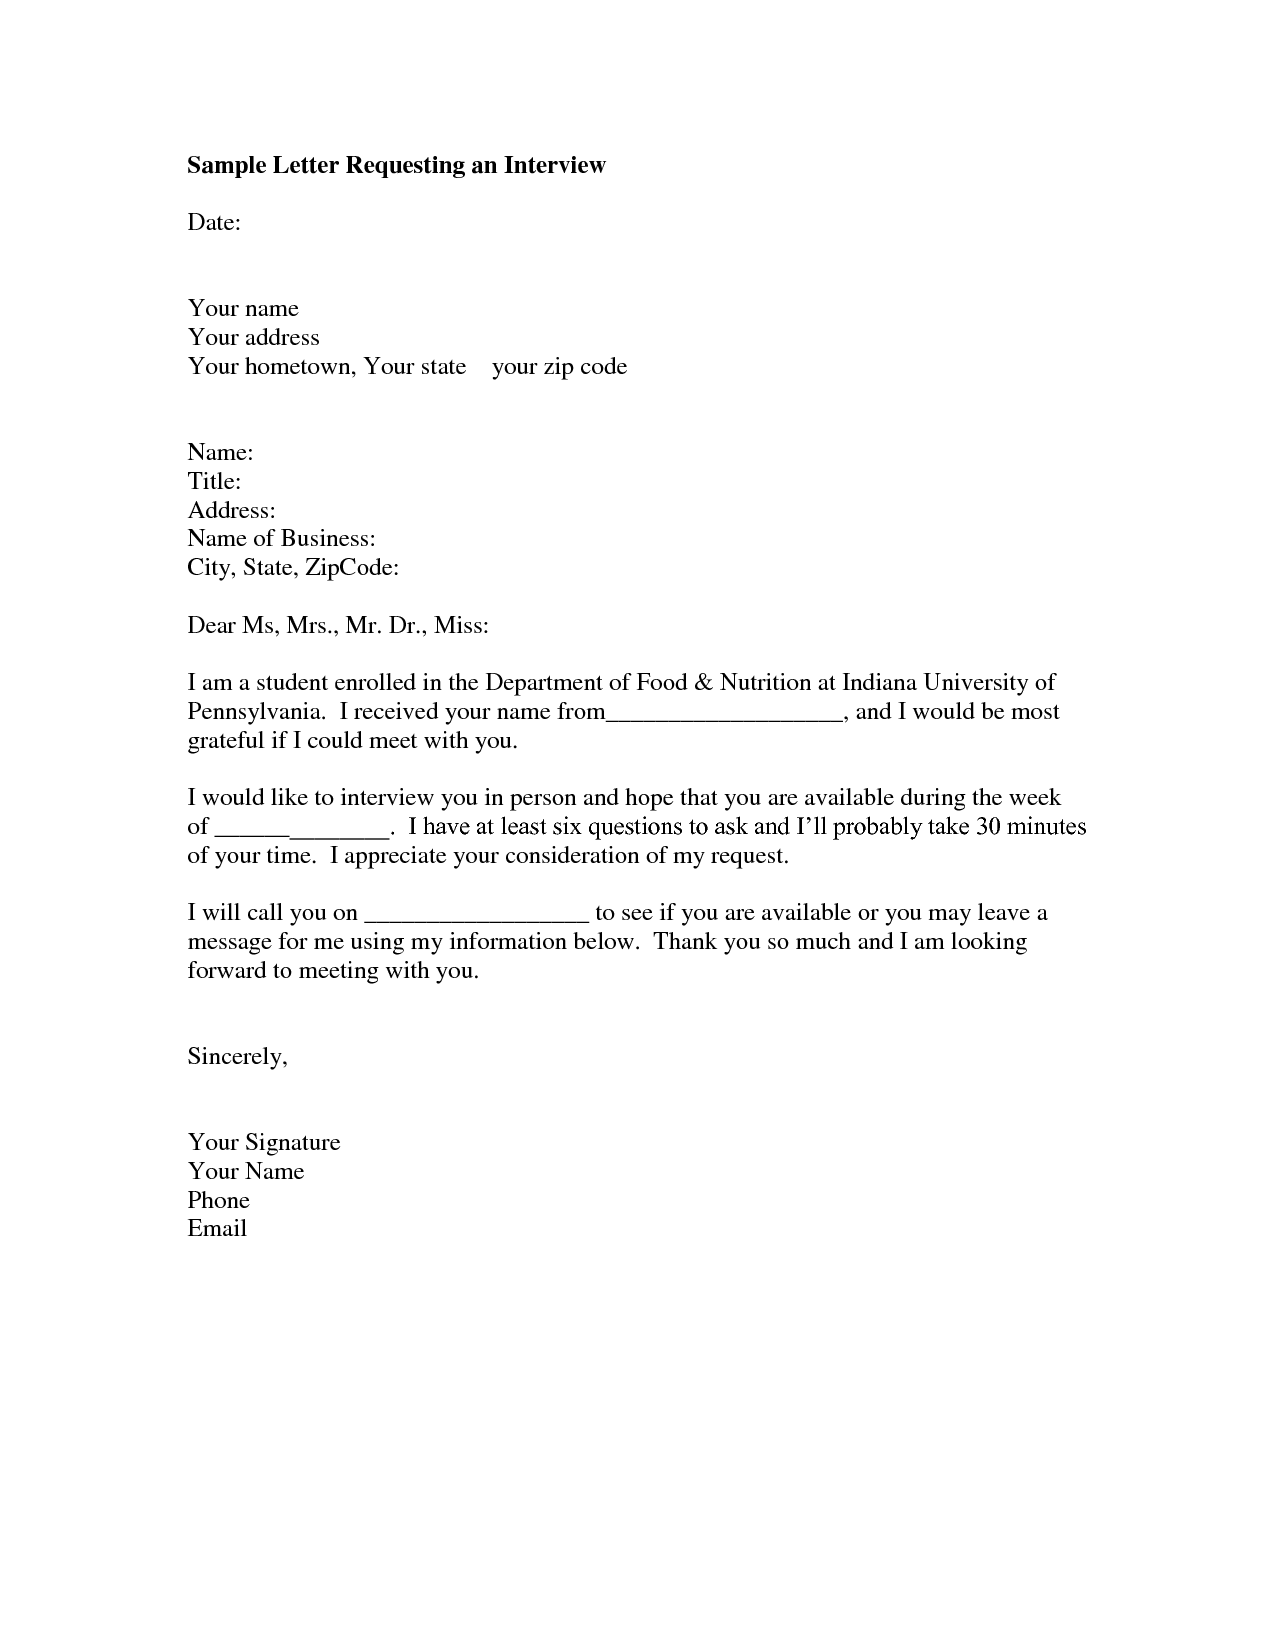 Interview Request Letter Sample Format Of A Letter You Can Use